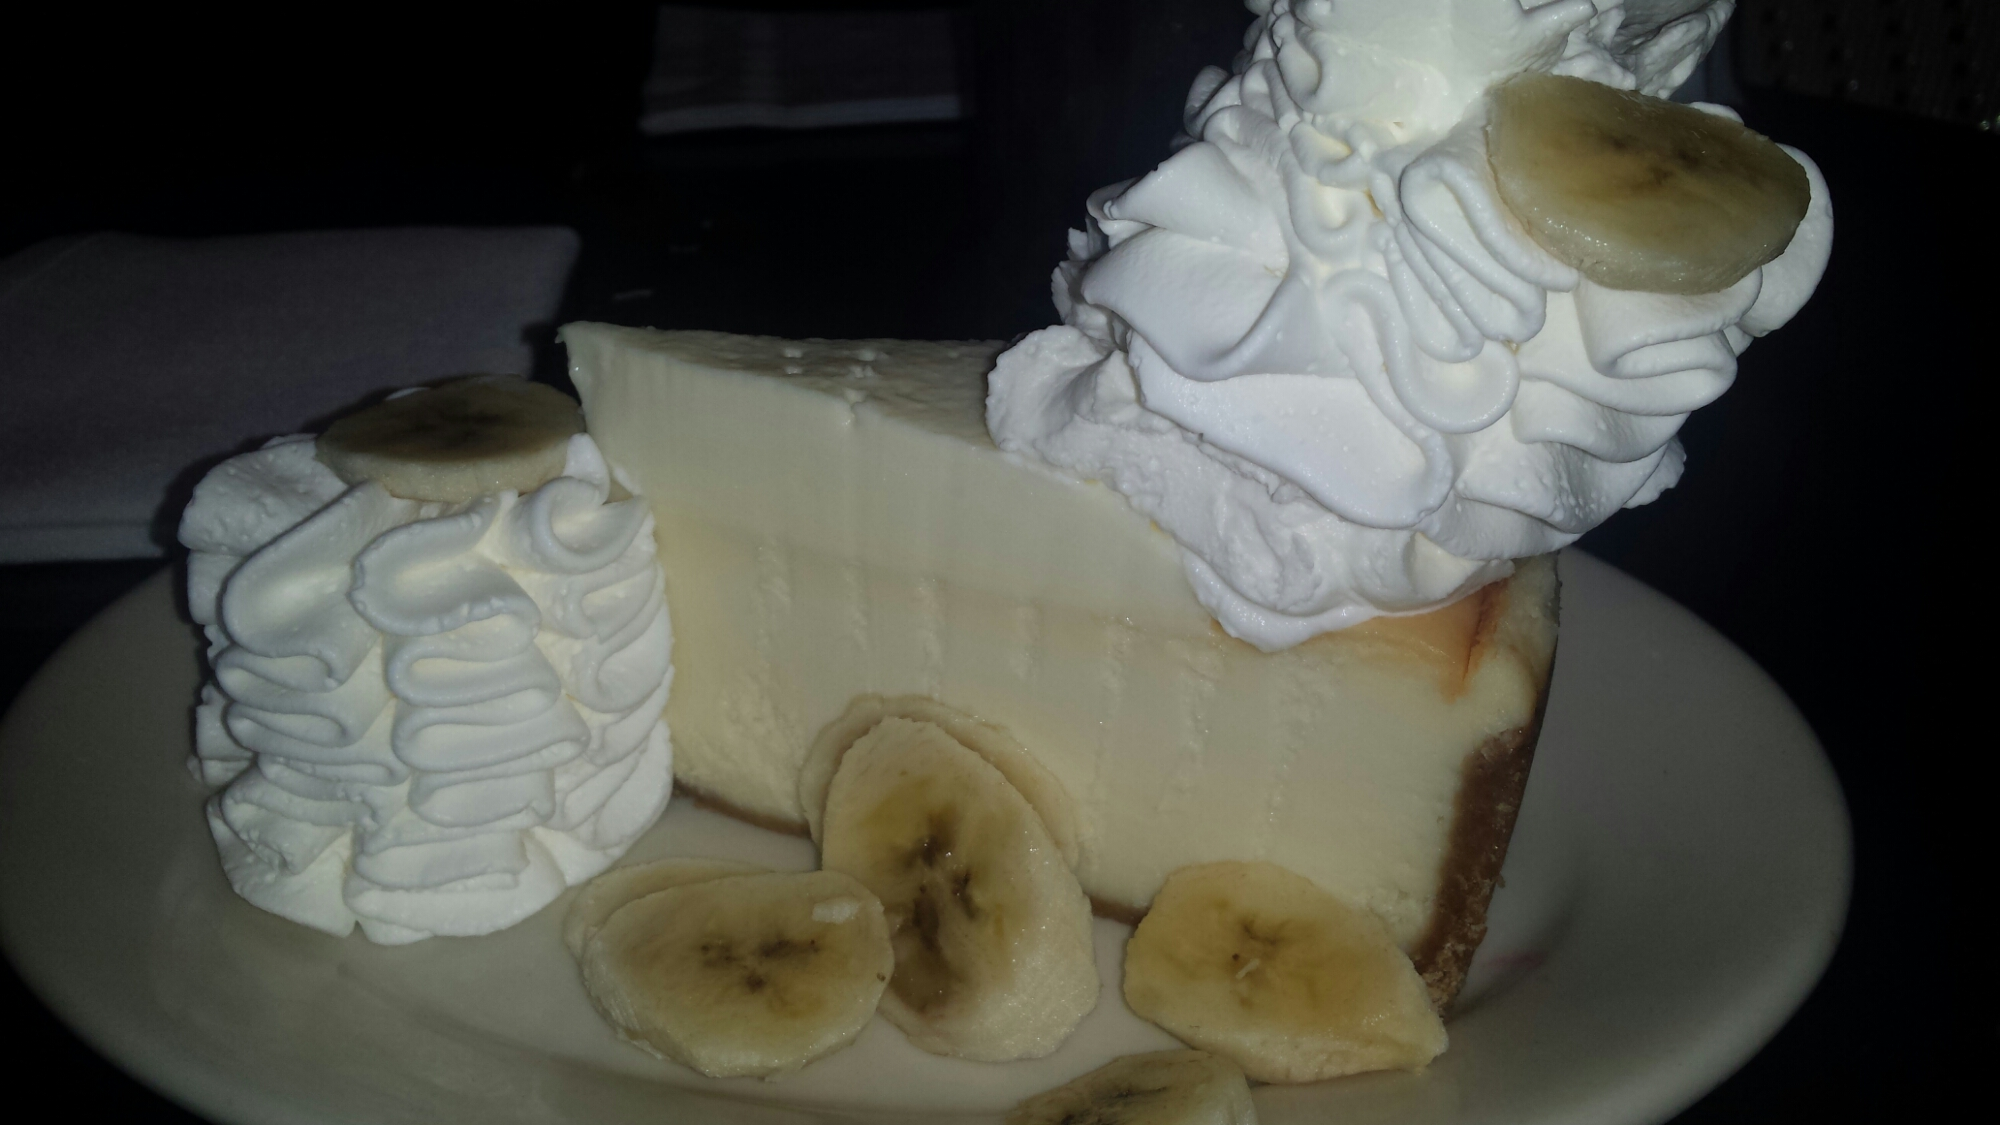 Banana Cream Cheesecake - Banana Cream Cheesecake Topped with Bavarian Cream and Fresh Sliced Bananas.